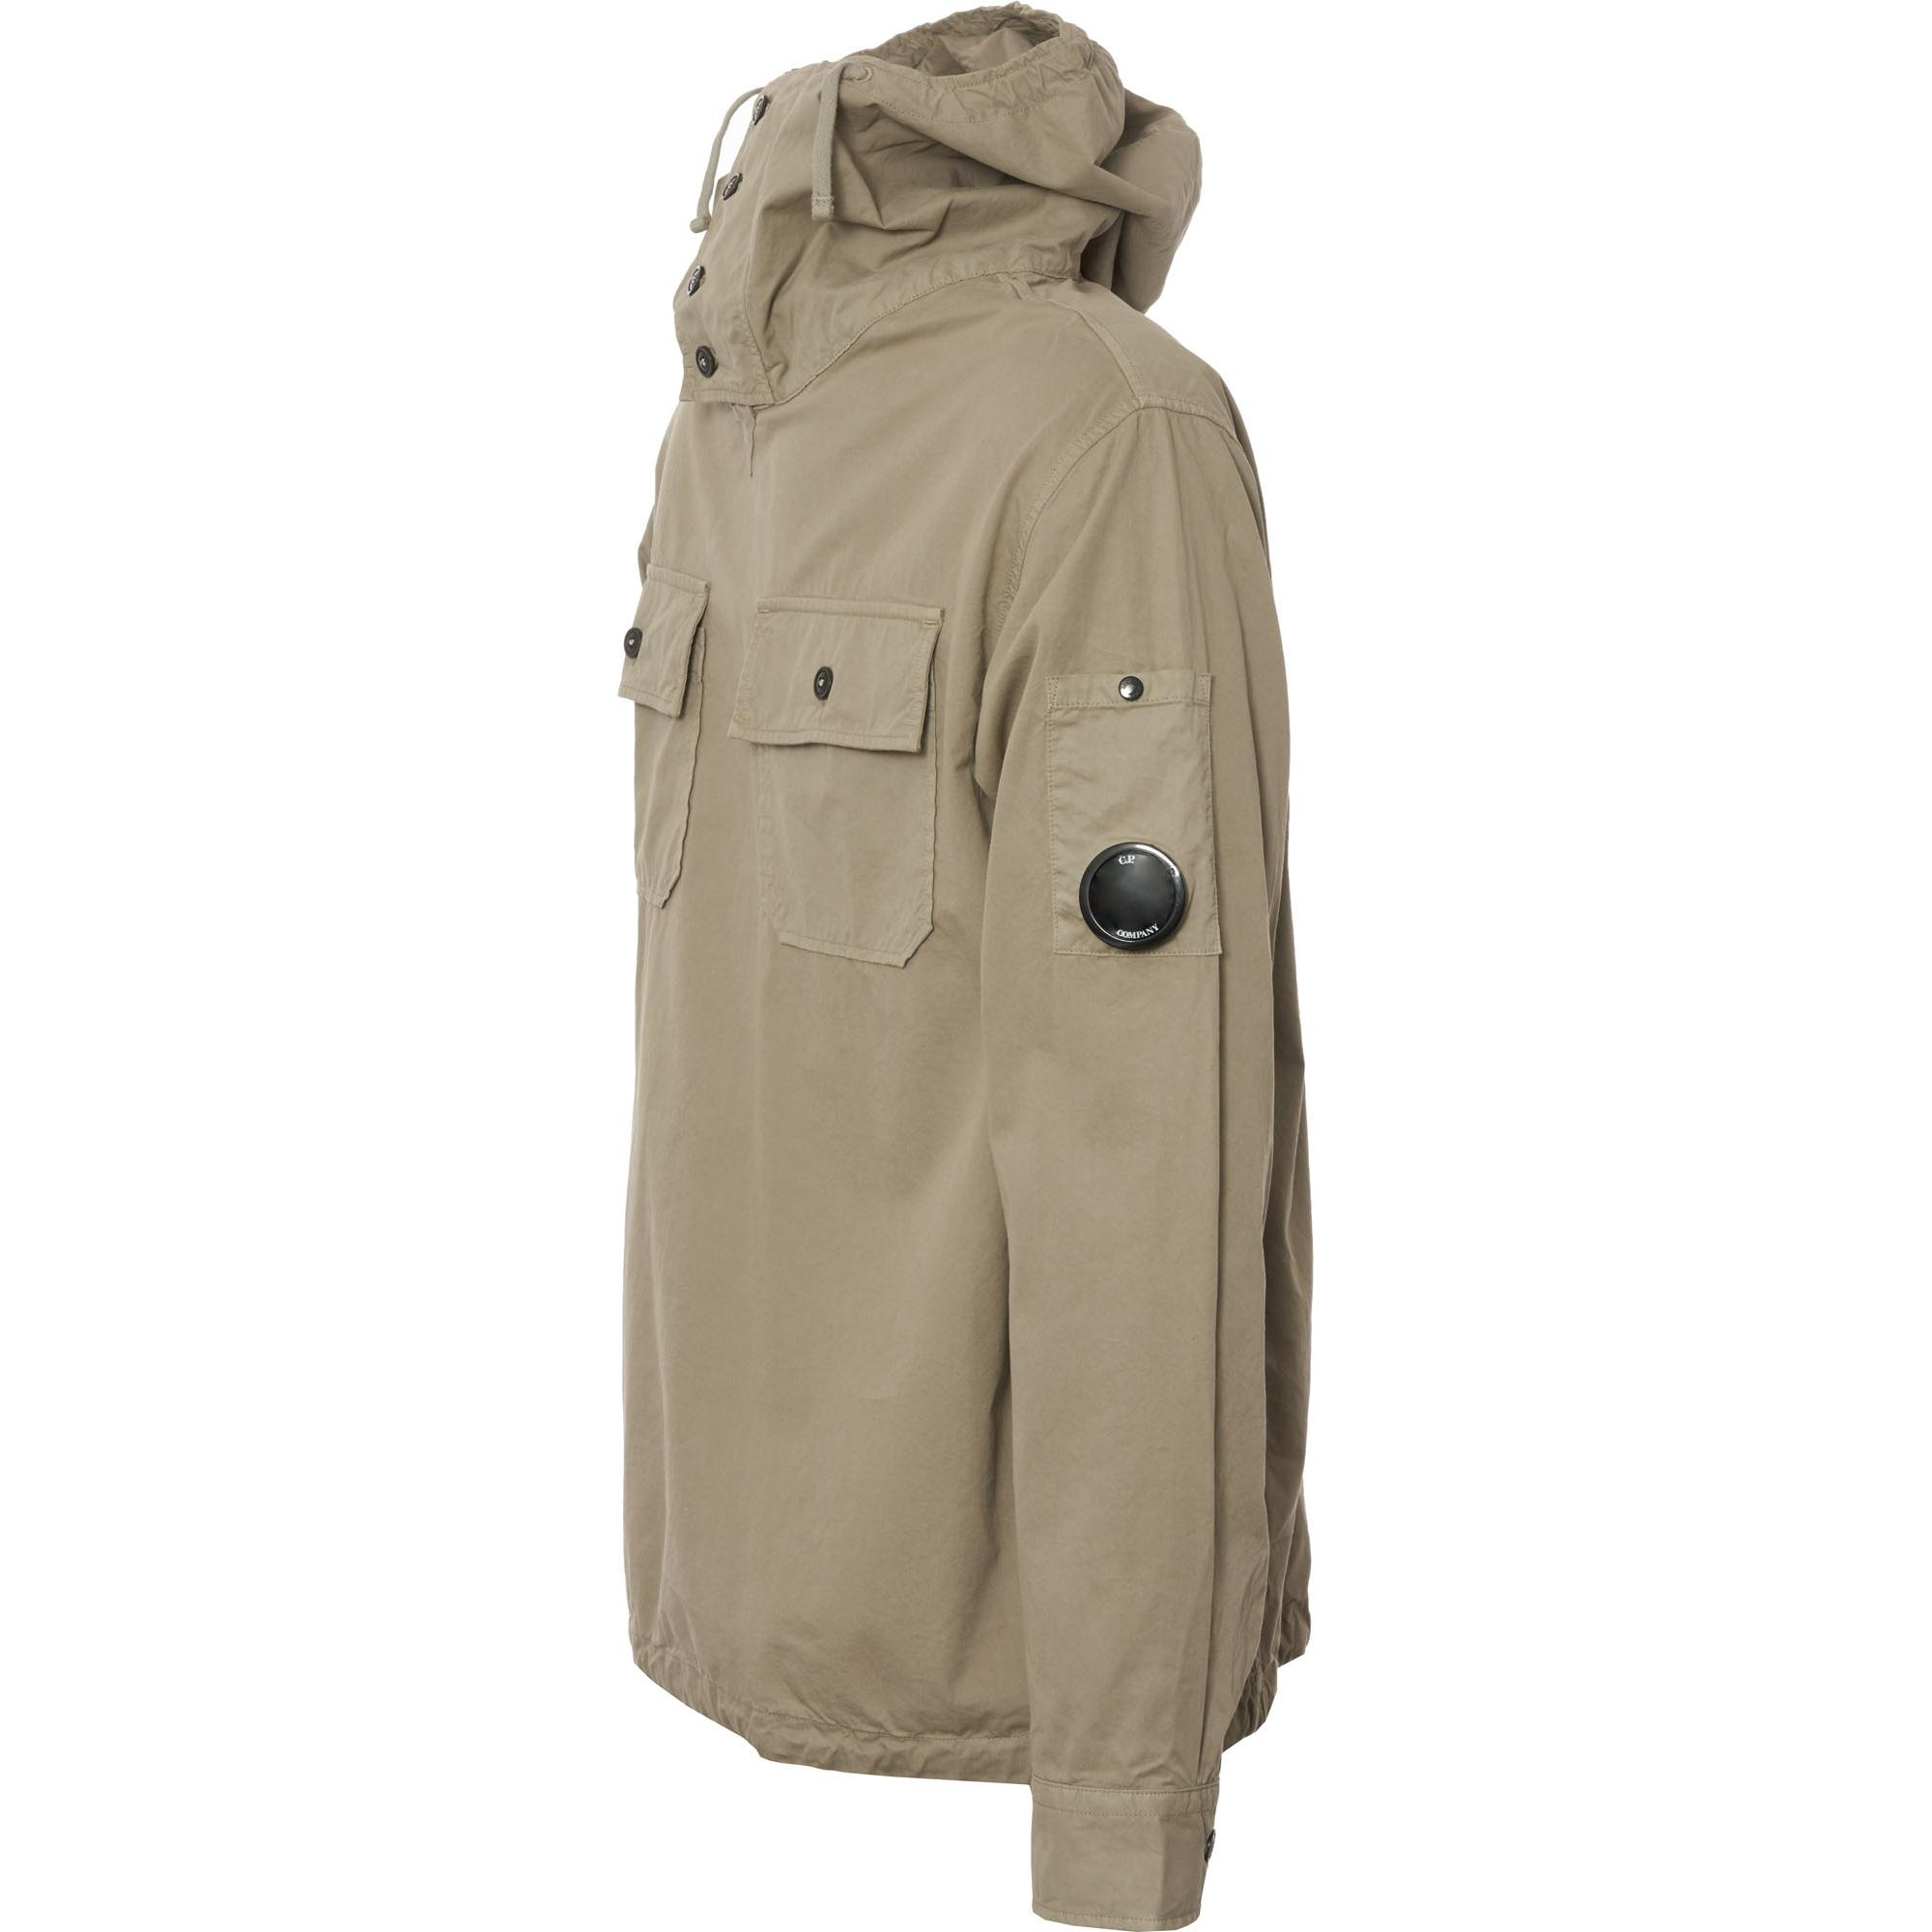 C P Company Synthetic Hooded Overshirt - Light Olive in Green for Men